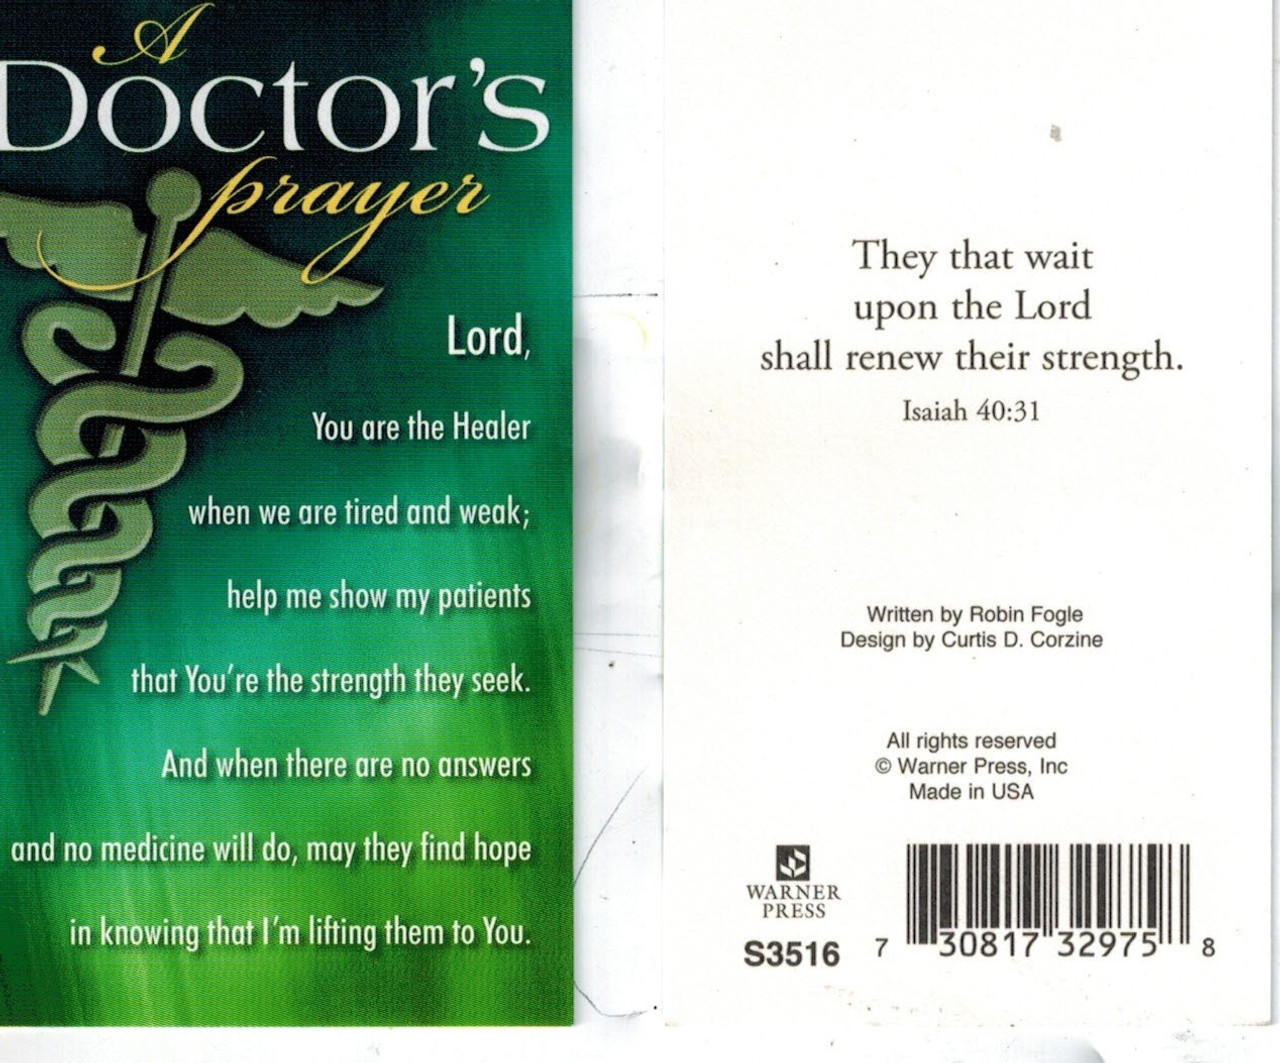 A Doctor's Prayer